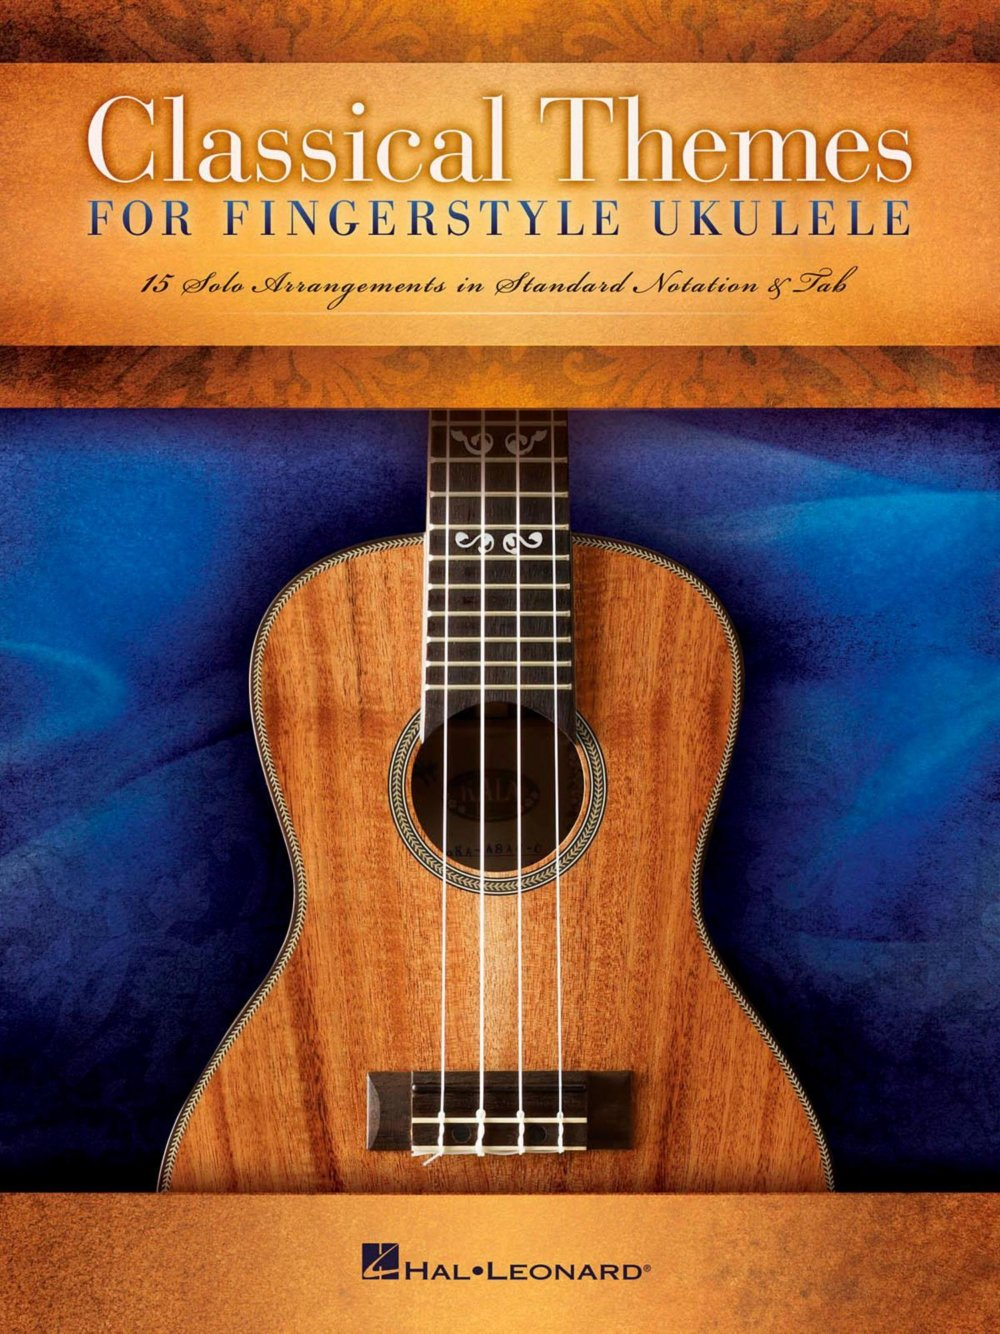 Classical Themes For Fingerstyle Ukulele. Partitions pour Ukelele:  Amazon.fr: Instruments de musique